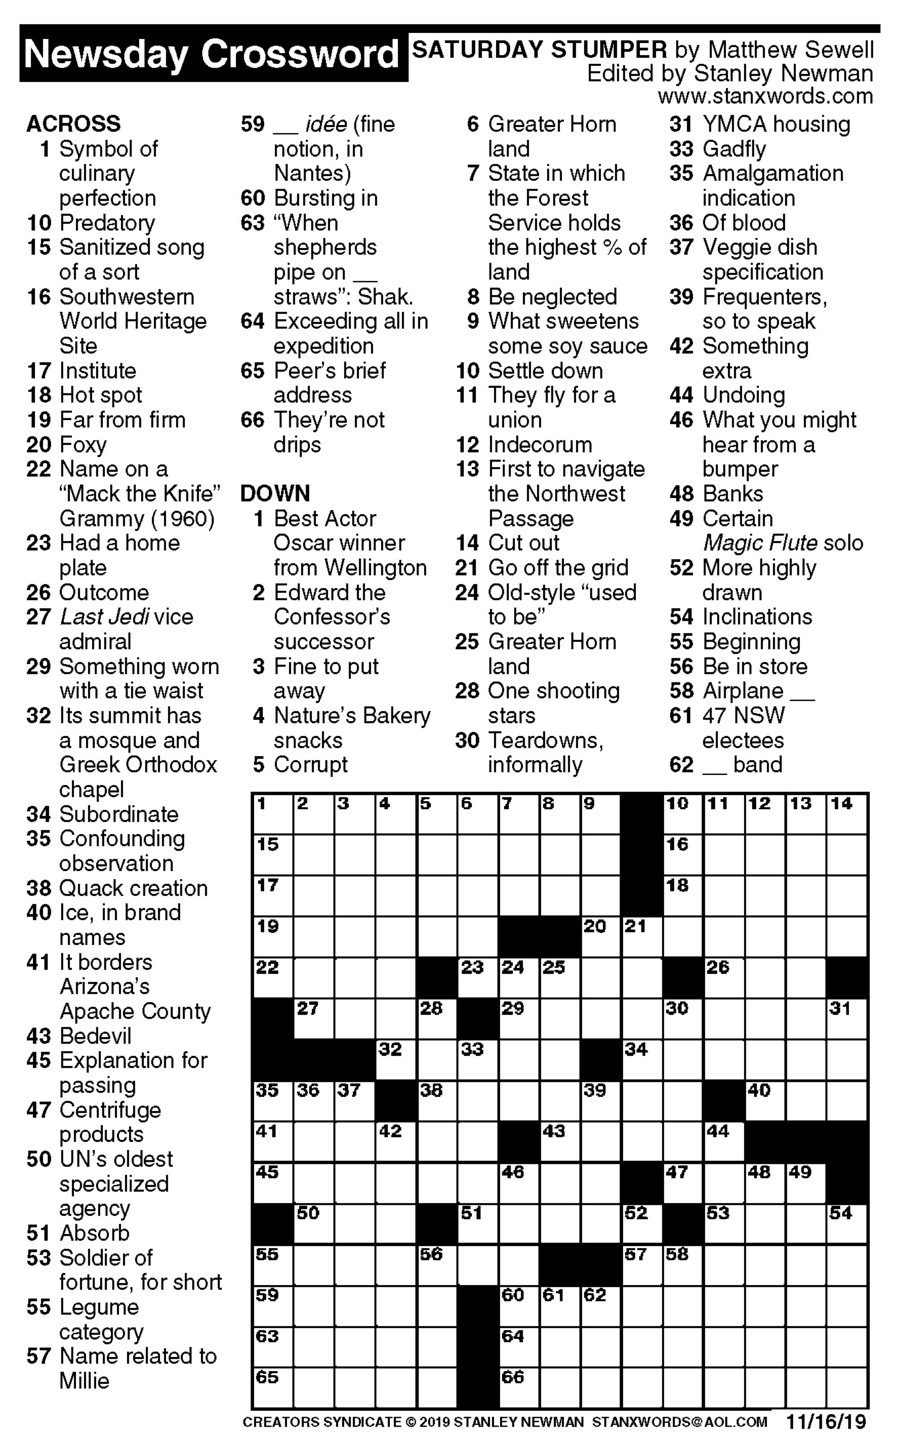 Newsday Crossword Puzzle for Nov 16, 2019